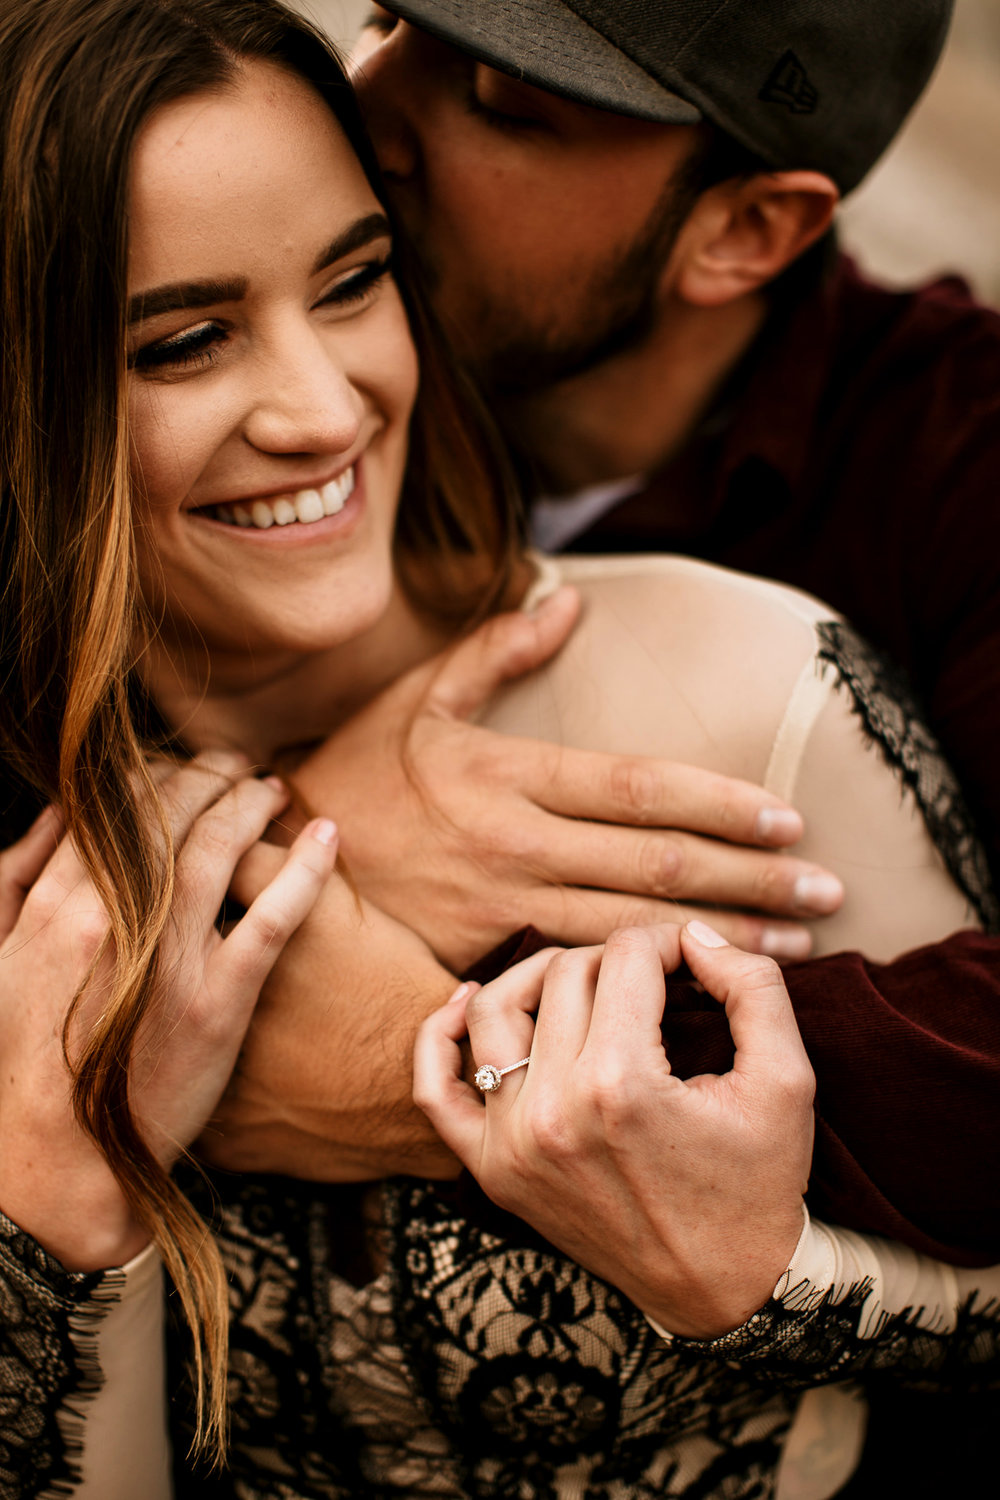 Liz Osban Photography Cheyenne Wyoming Engagement Wedding Photographer couple adventure elopement wedding laramie denver fort collins colorado rocky mountain national park29.jpg